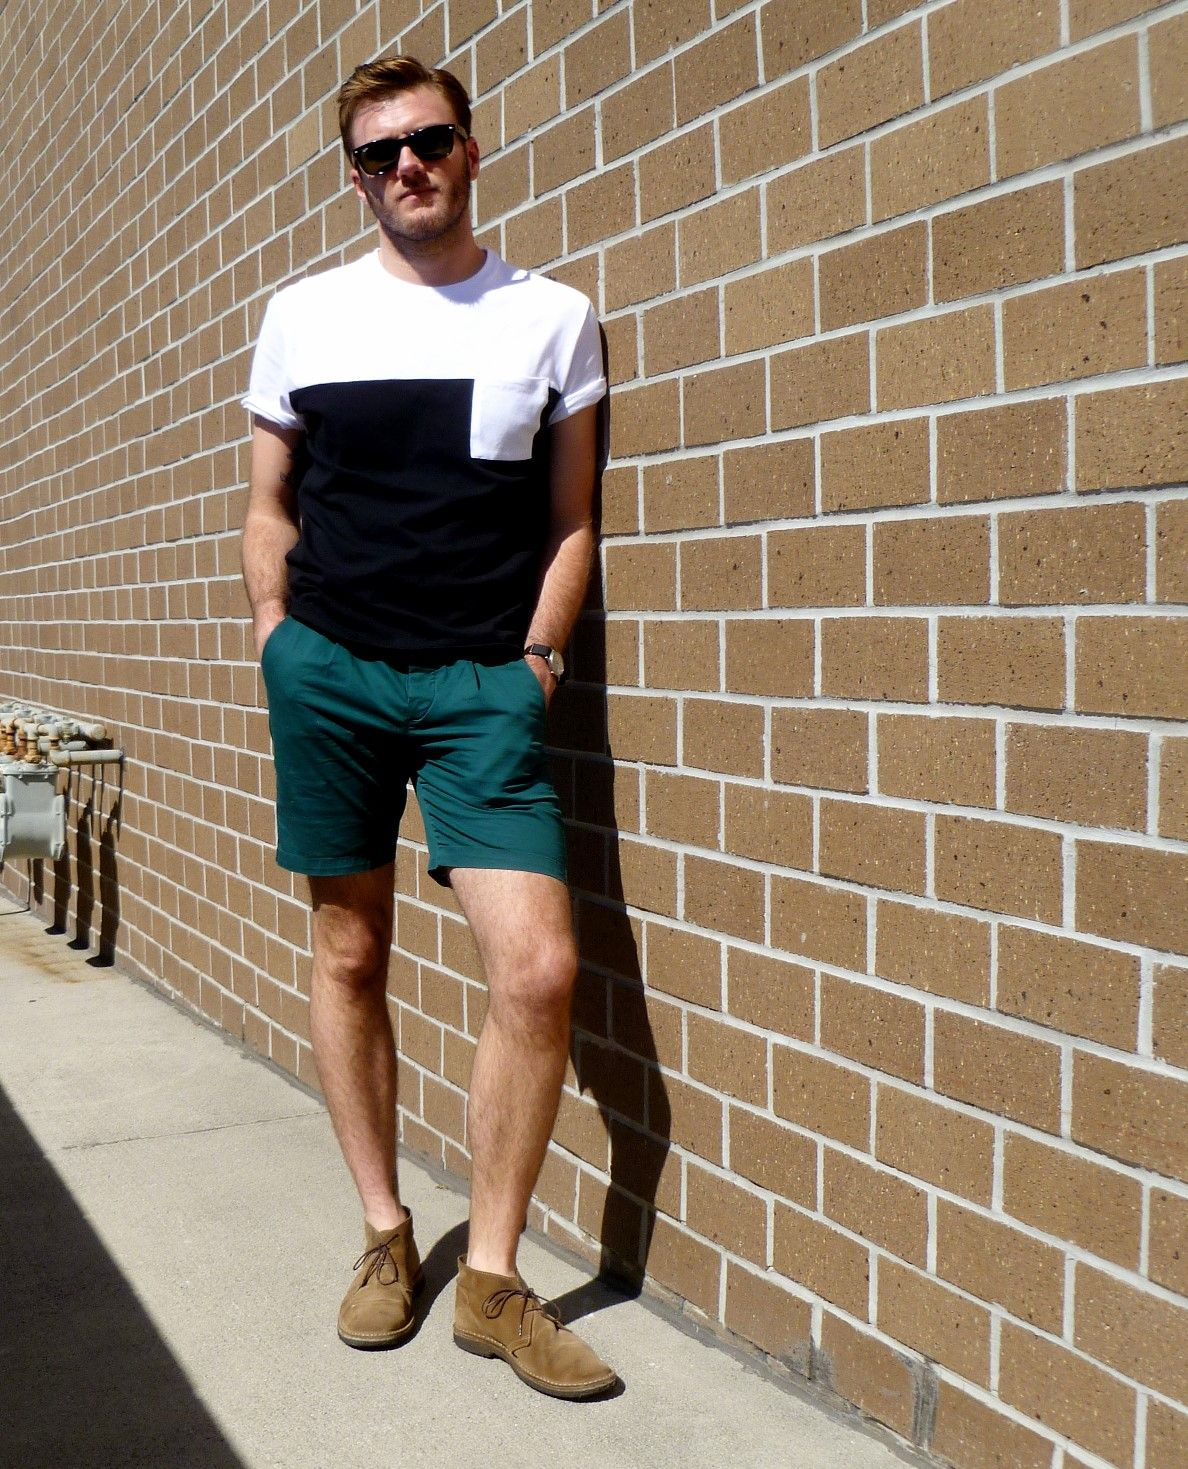 Mens Chukka Boots With Shorts Black and white tee 4 | Style: Men's ...